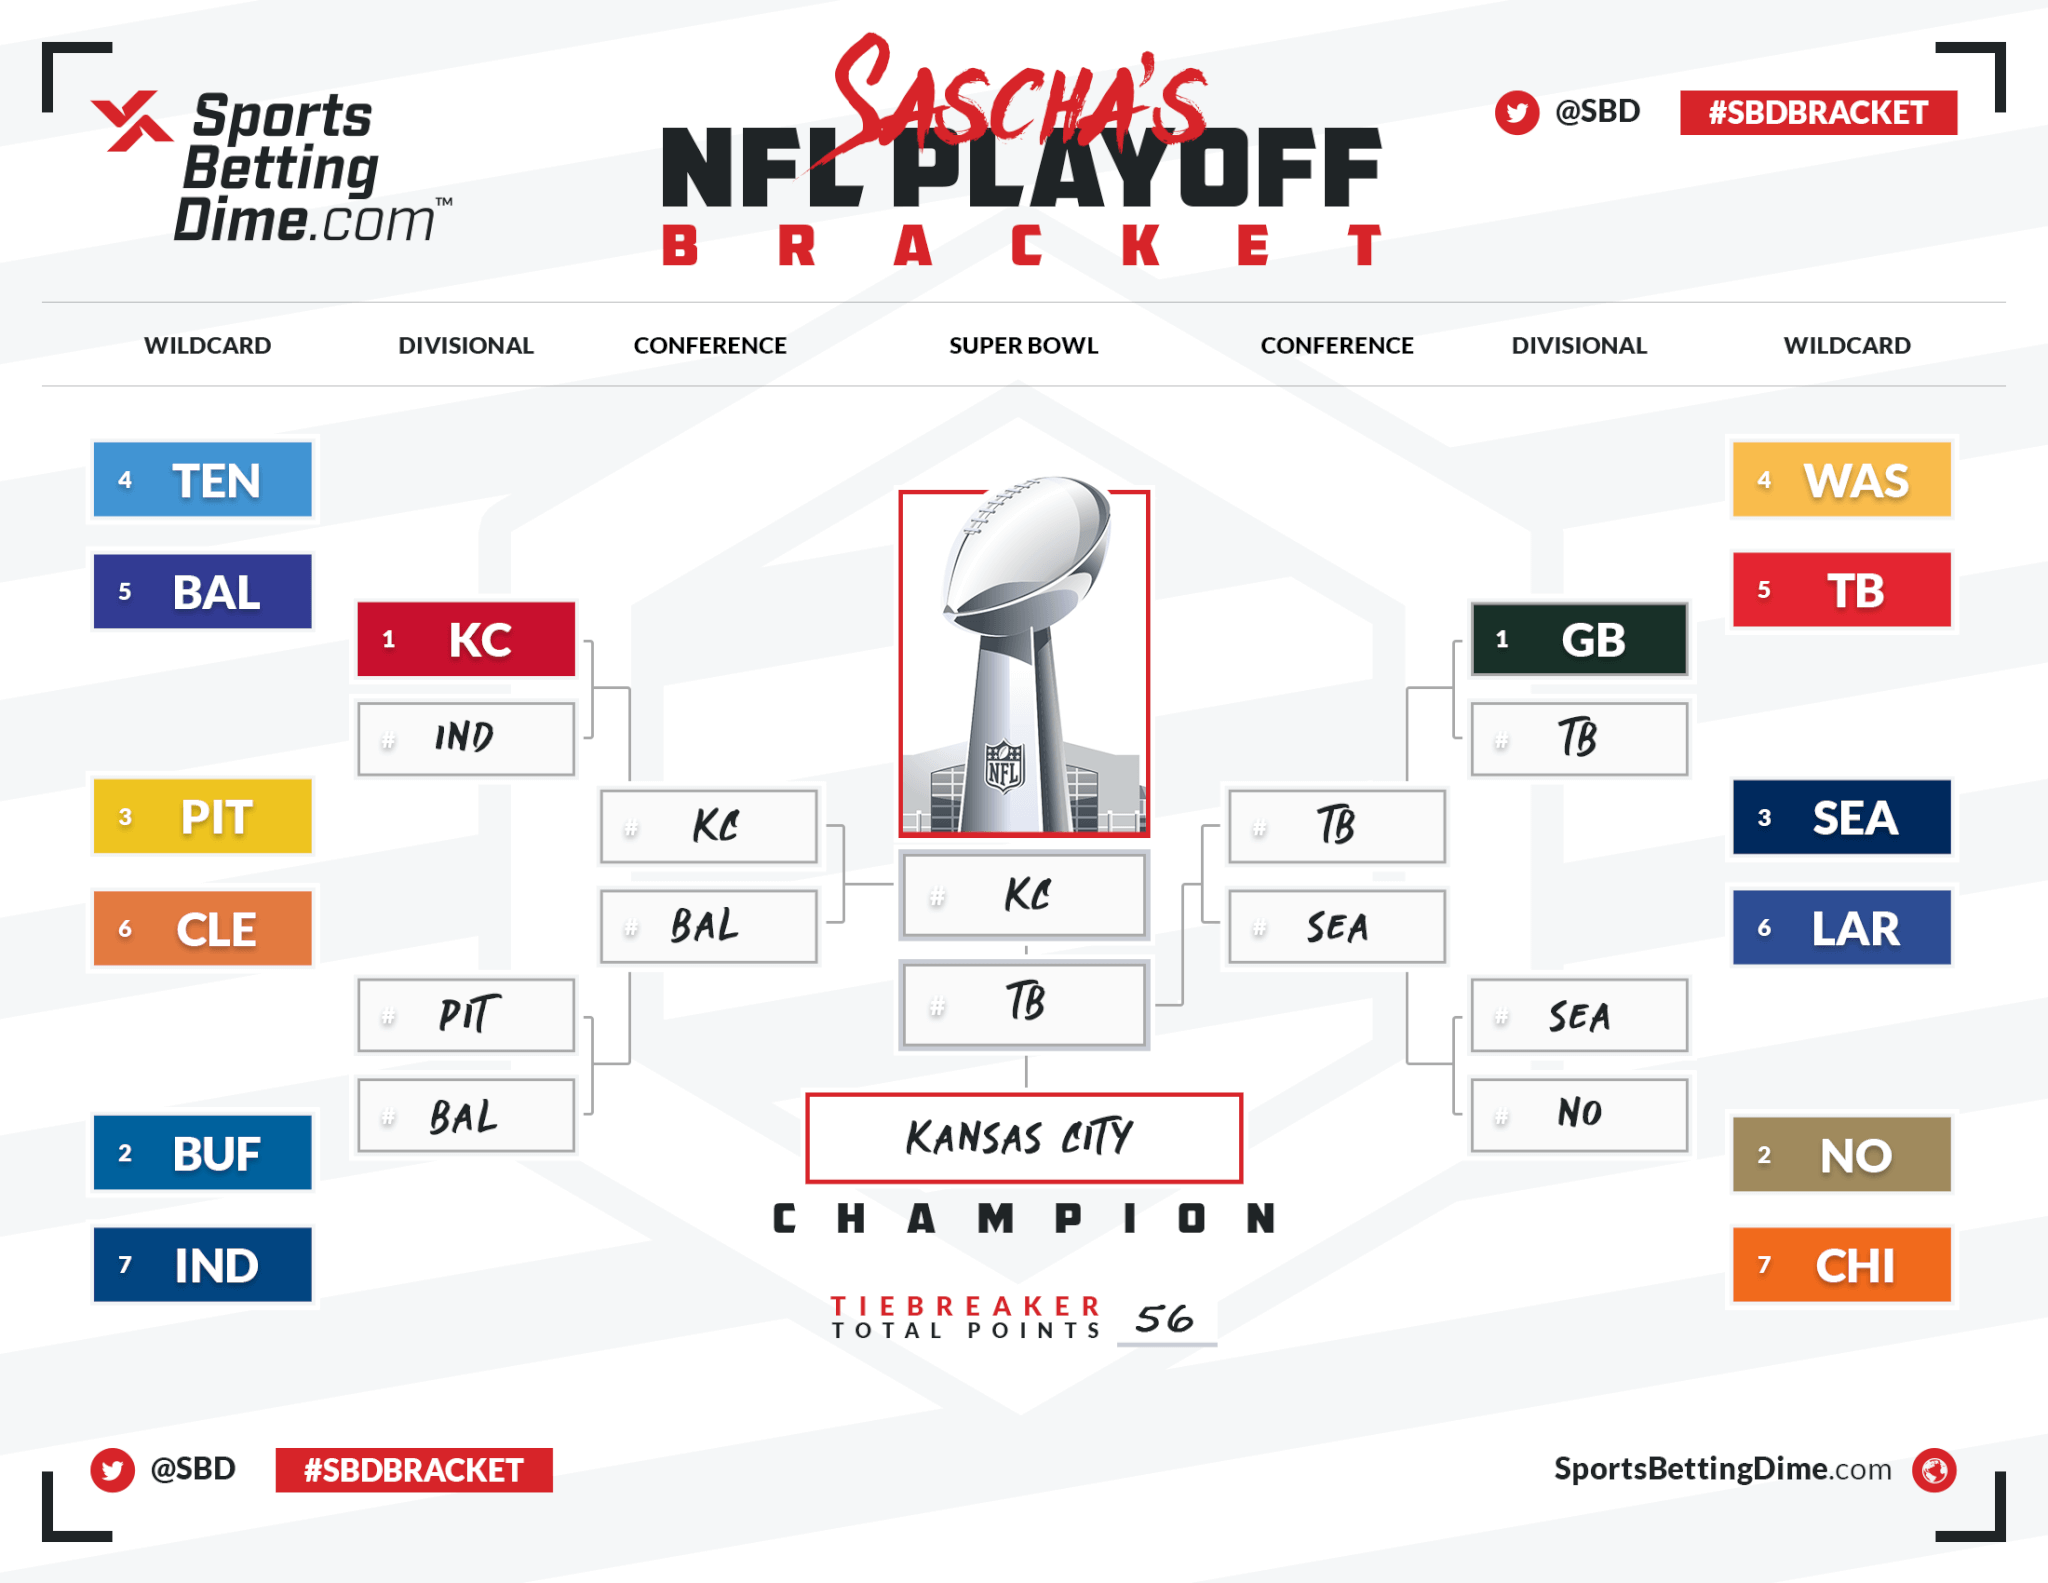 nfl playoff brackets betting websites